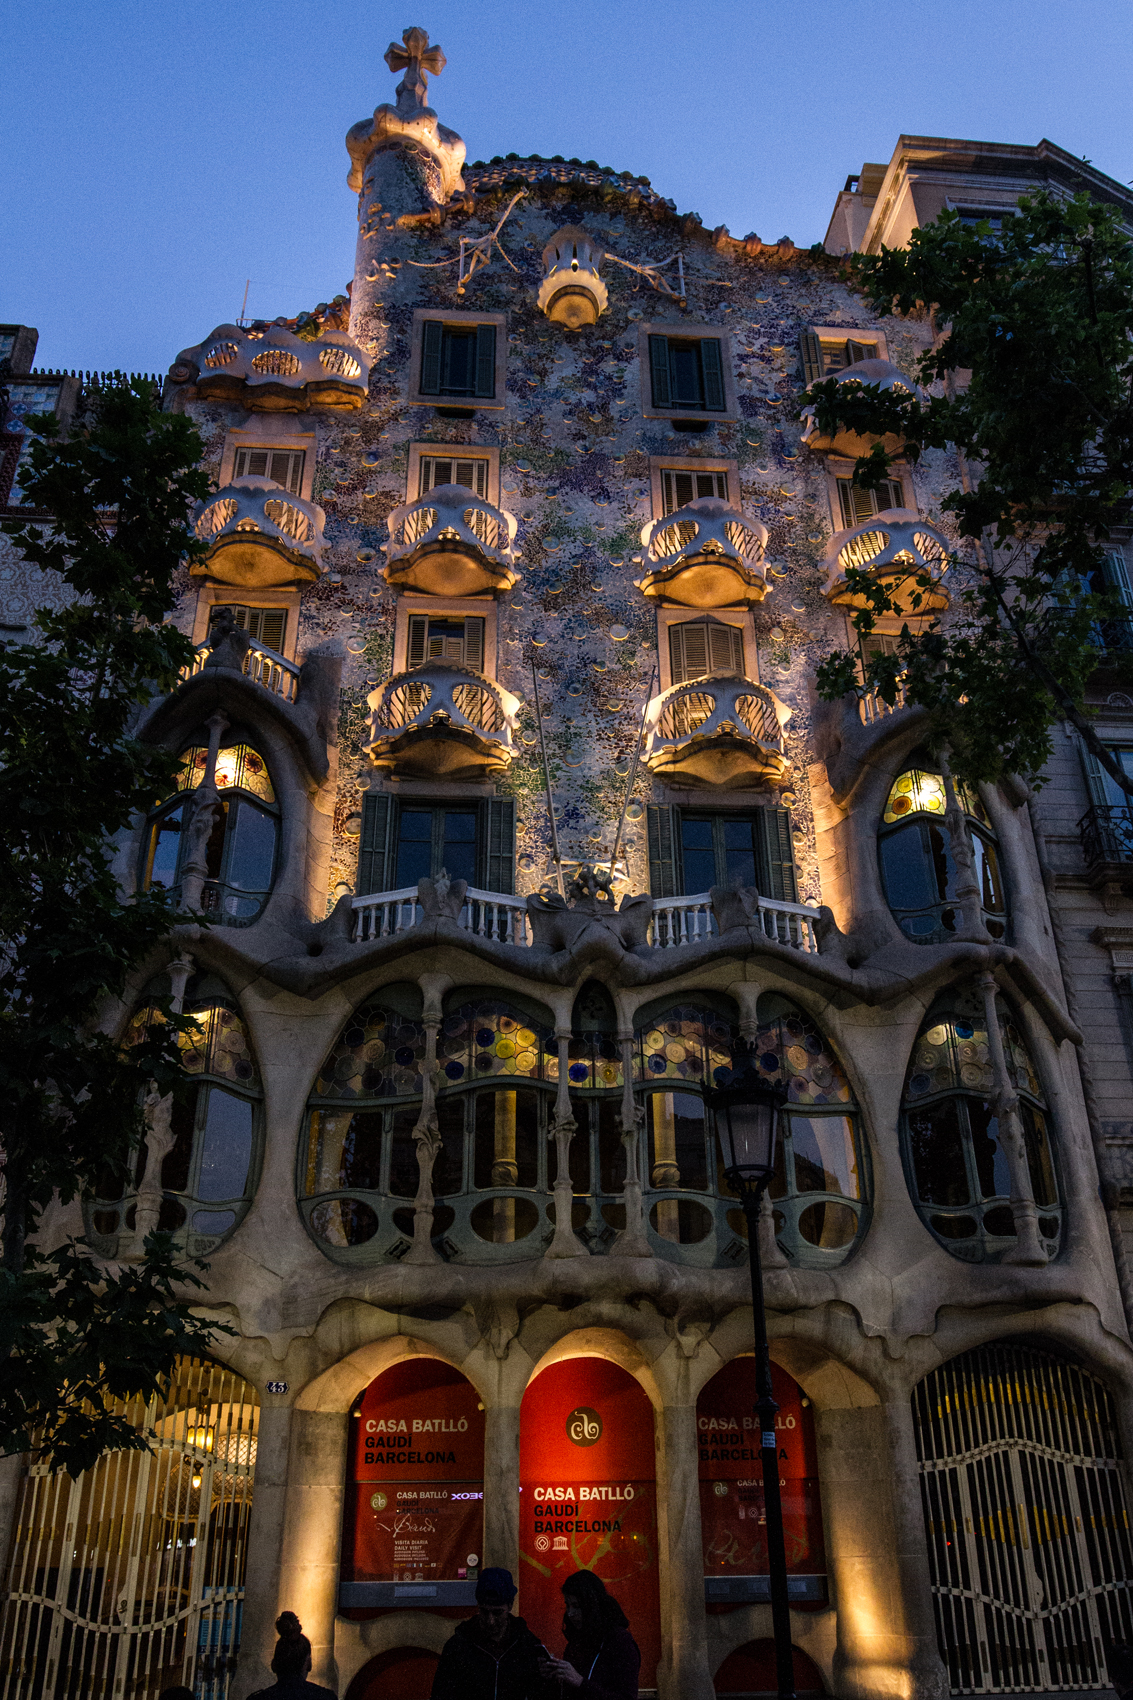 Casa Batllo in the evening